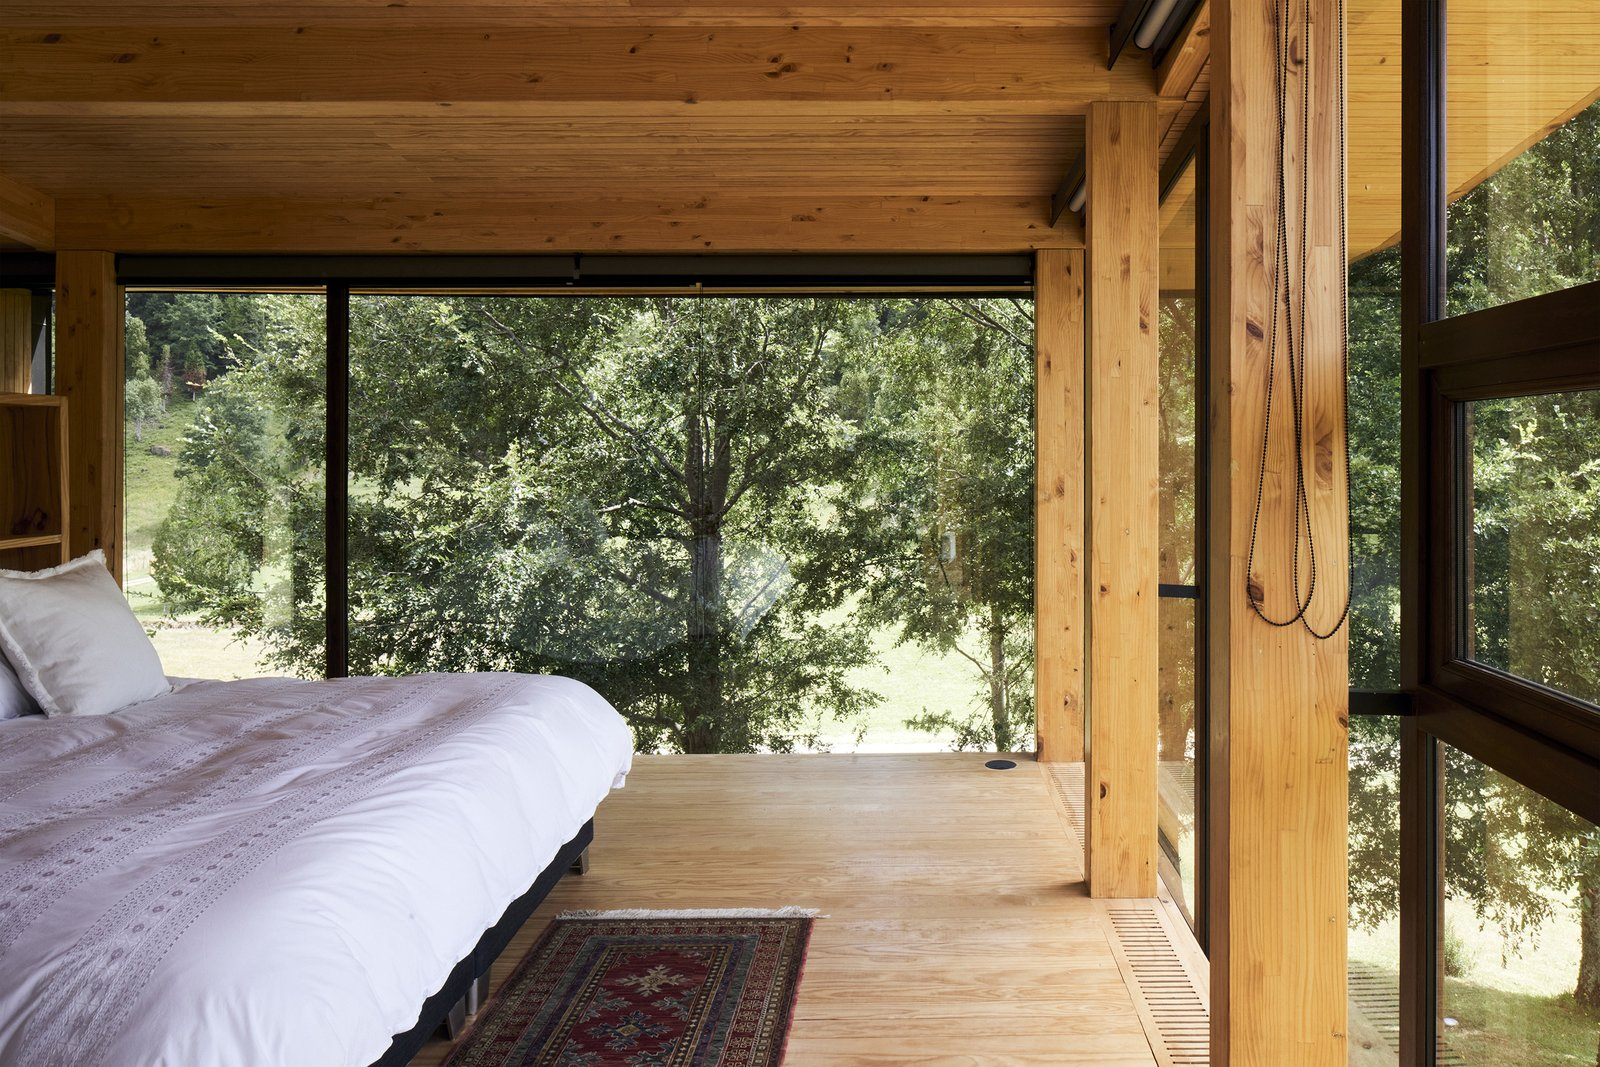 Bedroom, Bed, Medium Hardwood Floor, and Track Lighting The glass walls in the master bedroom allow the treetops to act as a natural curtain, and create the feeling of sleeping in a tree house.  Renovations from A Cantilevered Home in Southern Chile Takes Design Cues From Lake, Trees, and Sky